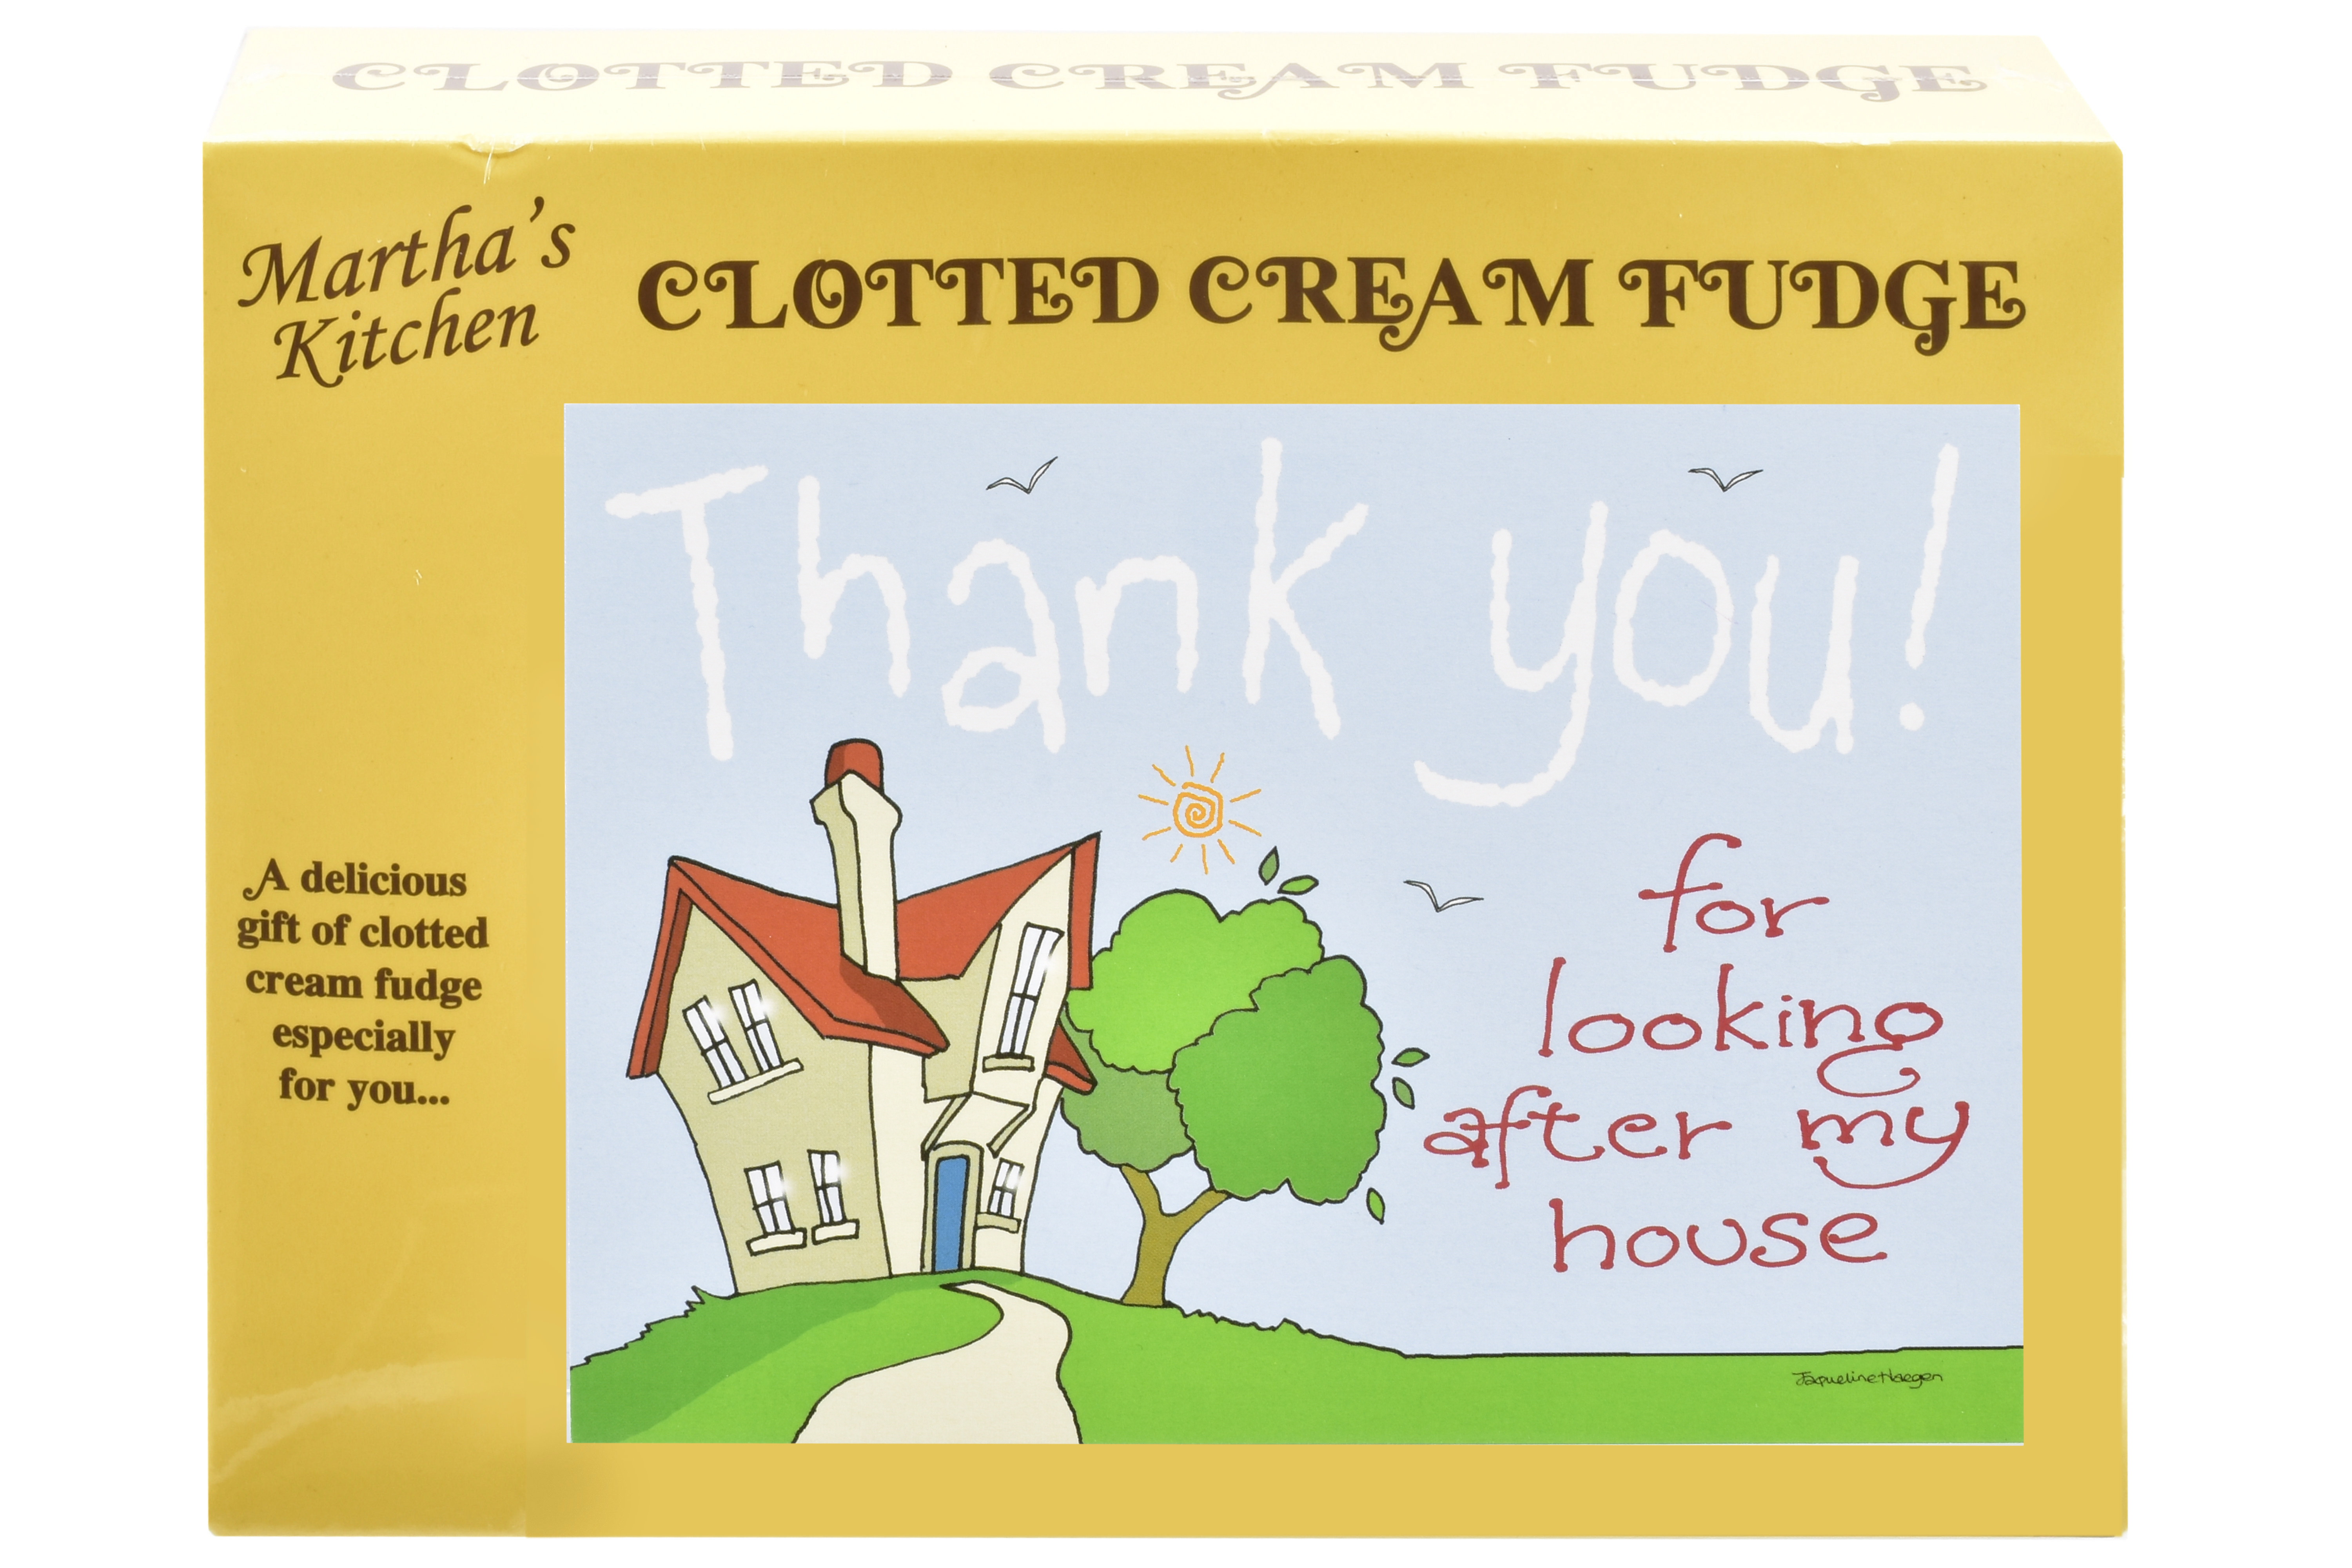 100g Clotted Cream Fudge 'Home' Postcard Box